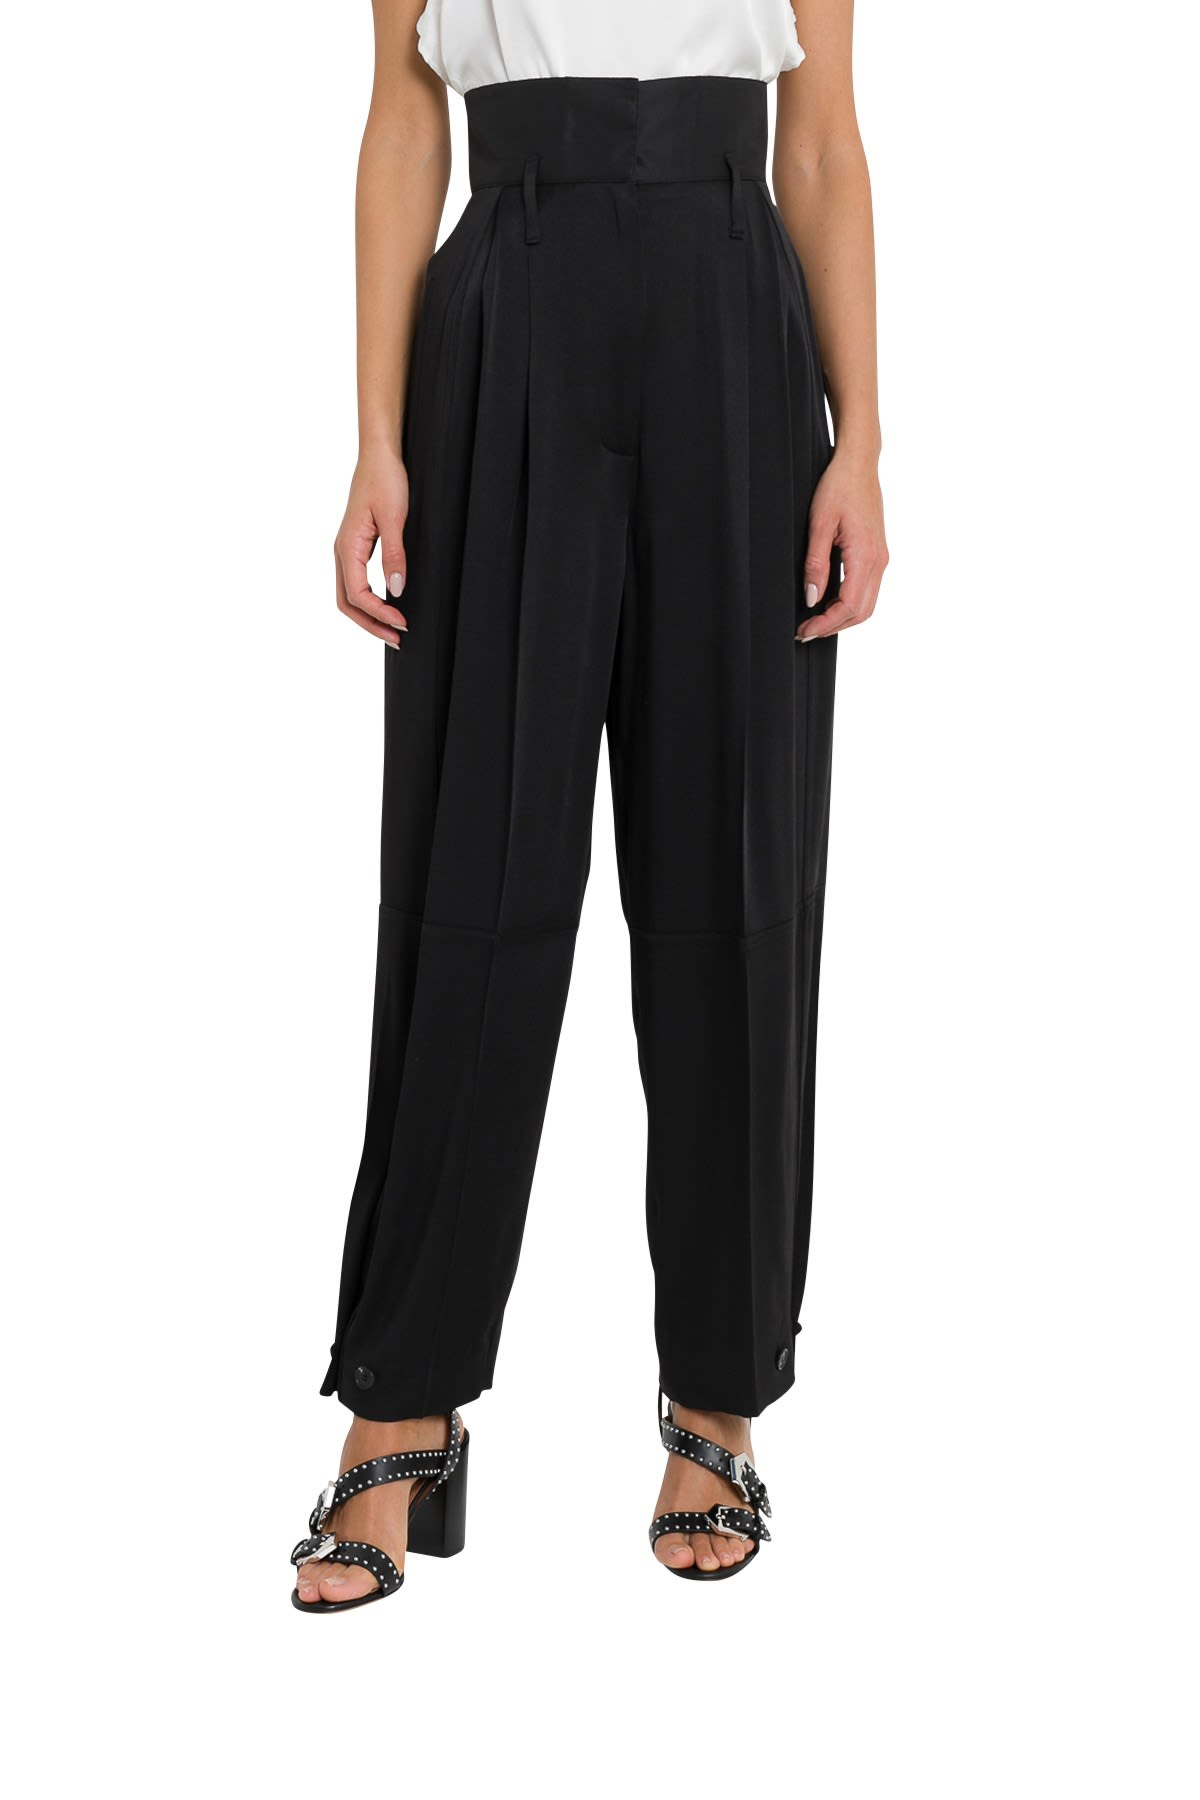 Givenchy High-waisted Military Pants